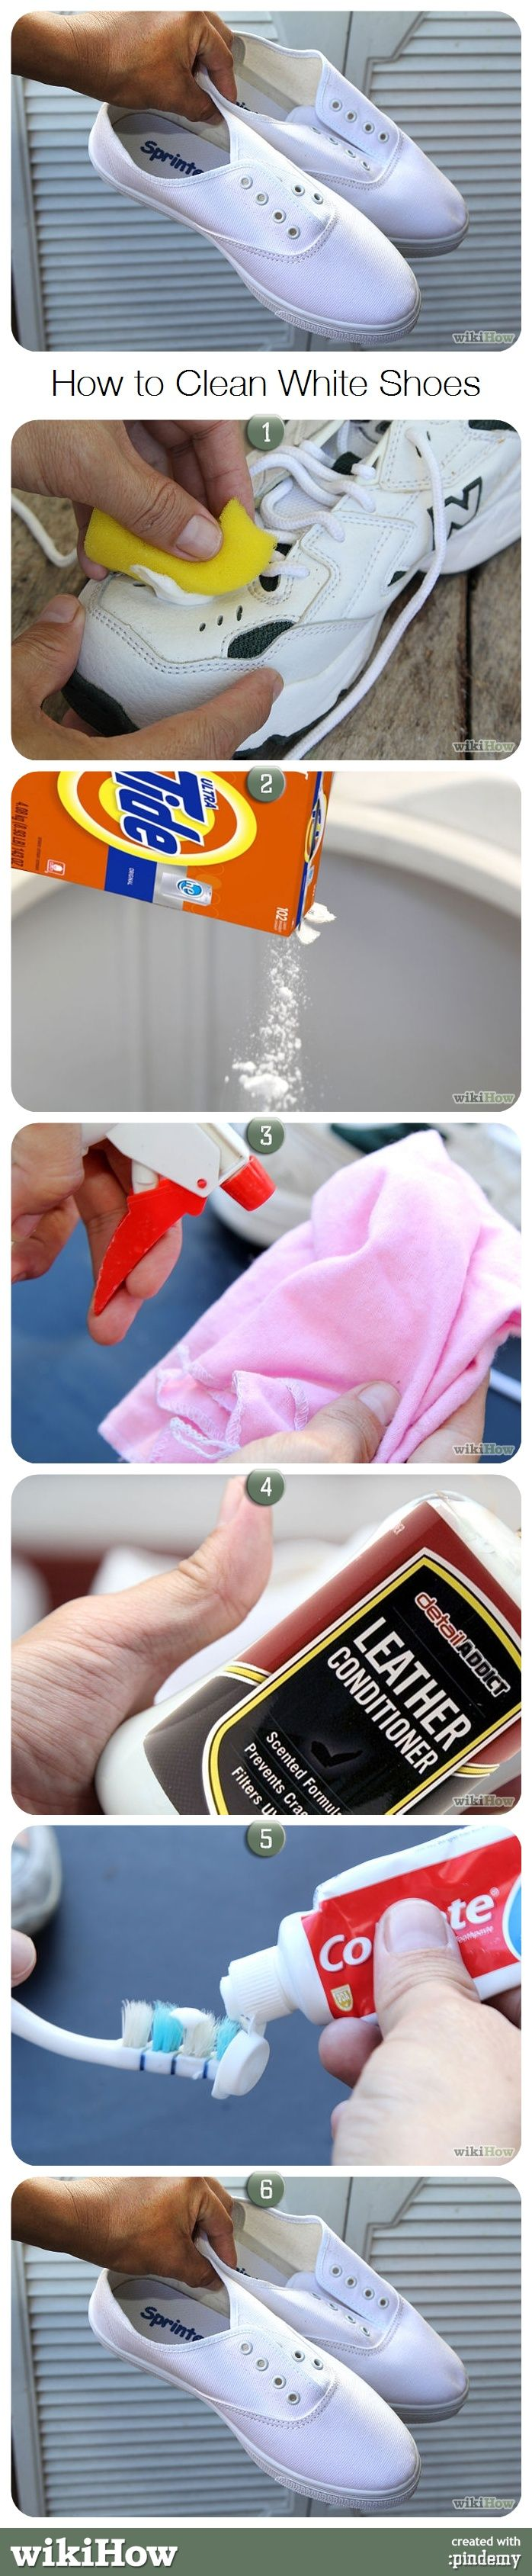 How to clean white shoes. #soap #polish #cleaning